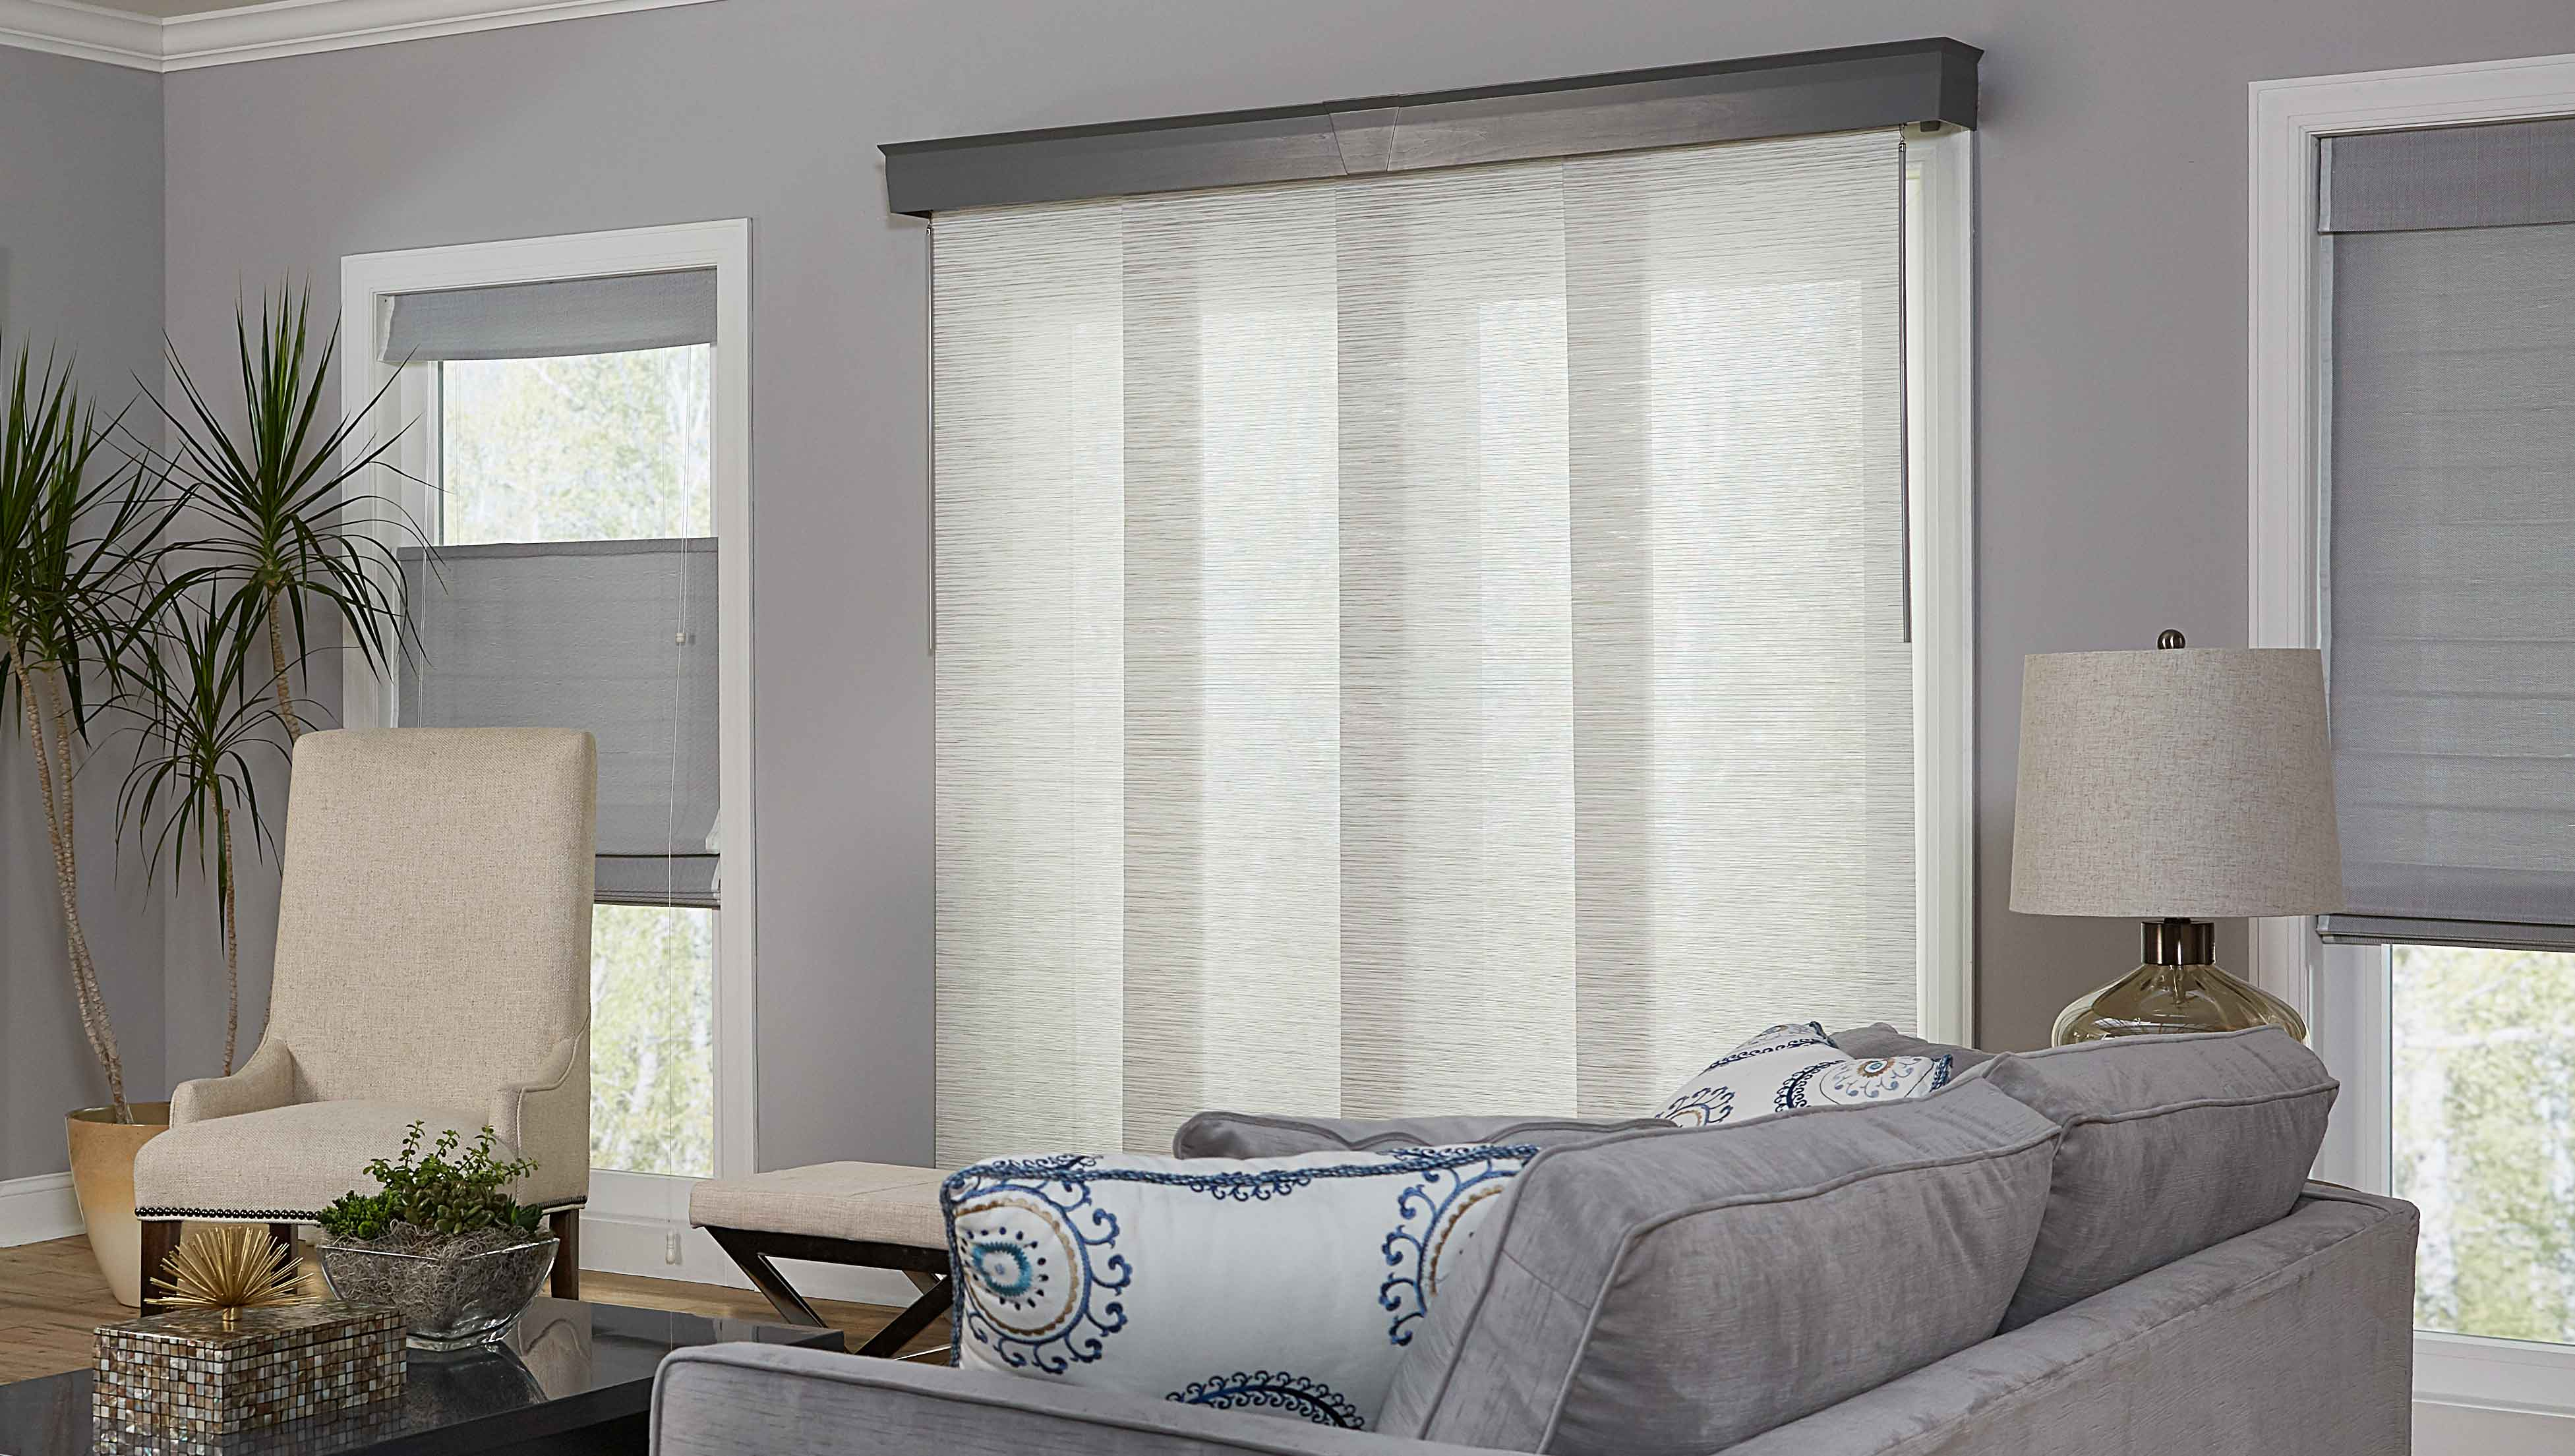 Sliding Panel Blinds R And C Trading